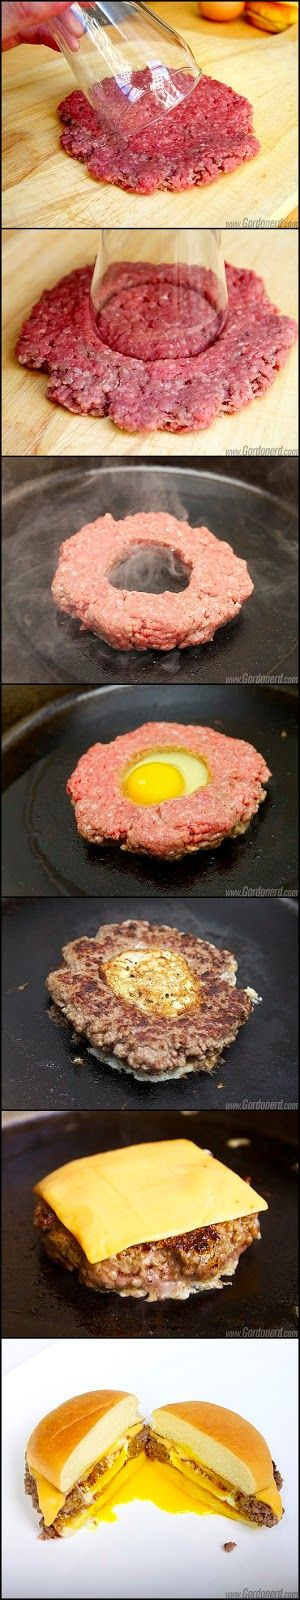 Wait, What??? OMG Perfect Burgers!